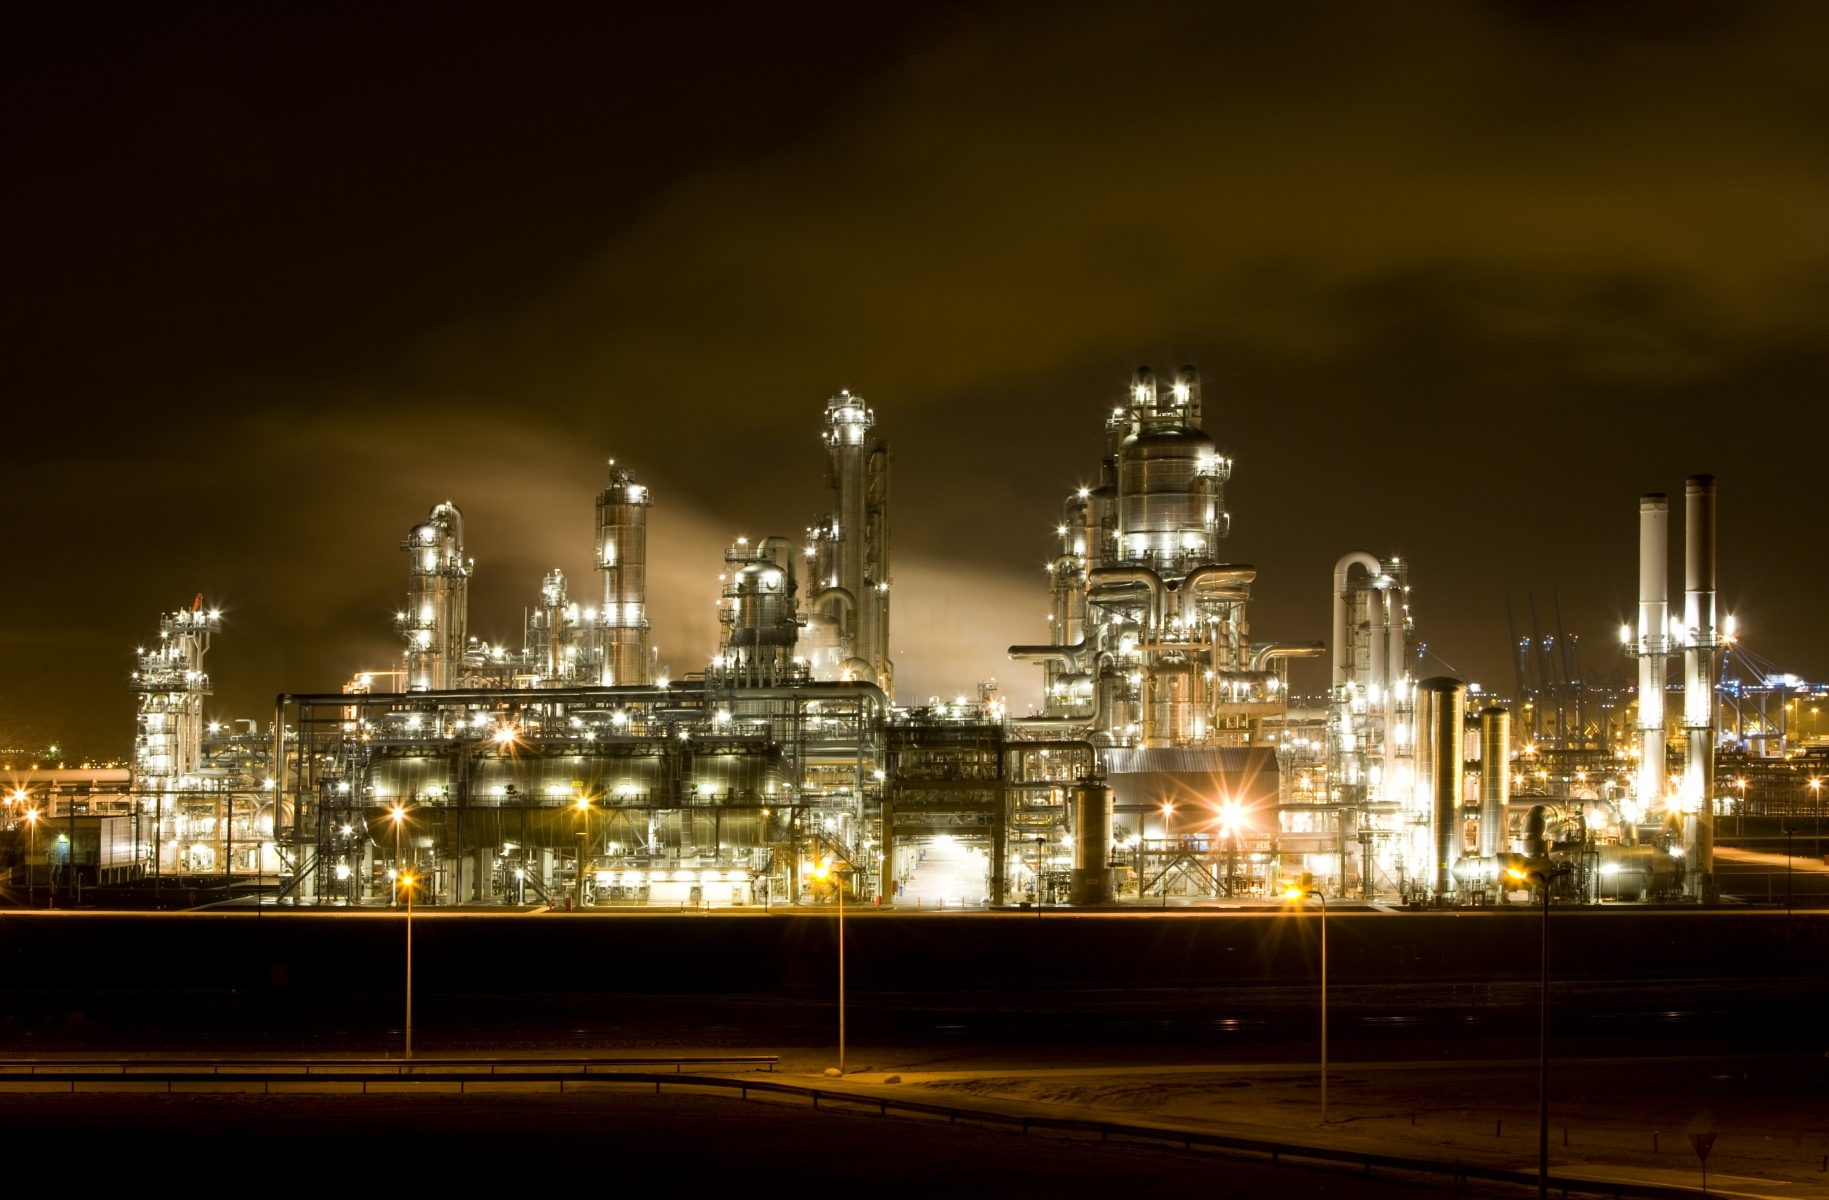 Veolia signs a record contract with Sinopec, the top refining company in China and Asia